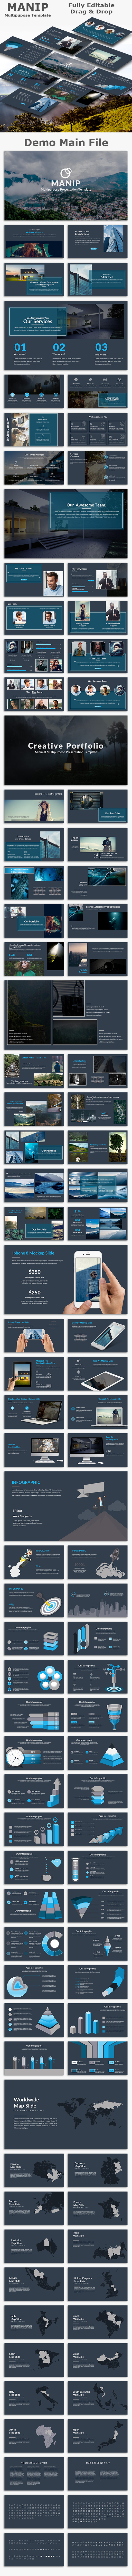 Manip Multipurpose Keynote Template - Creative Keynote Templates